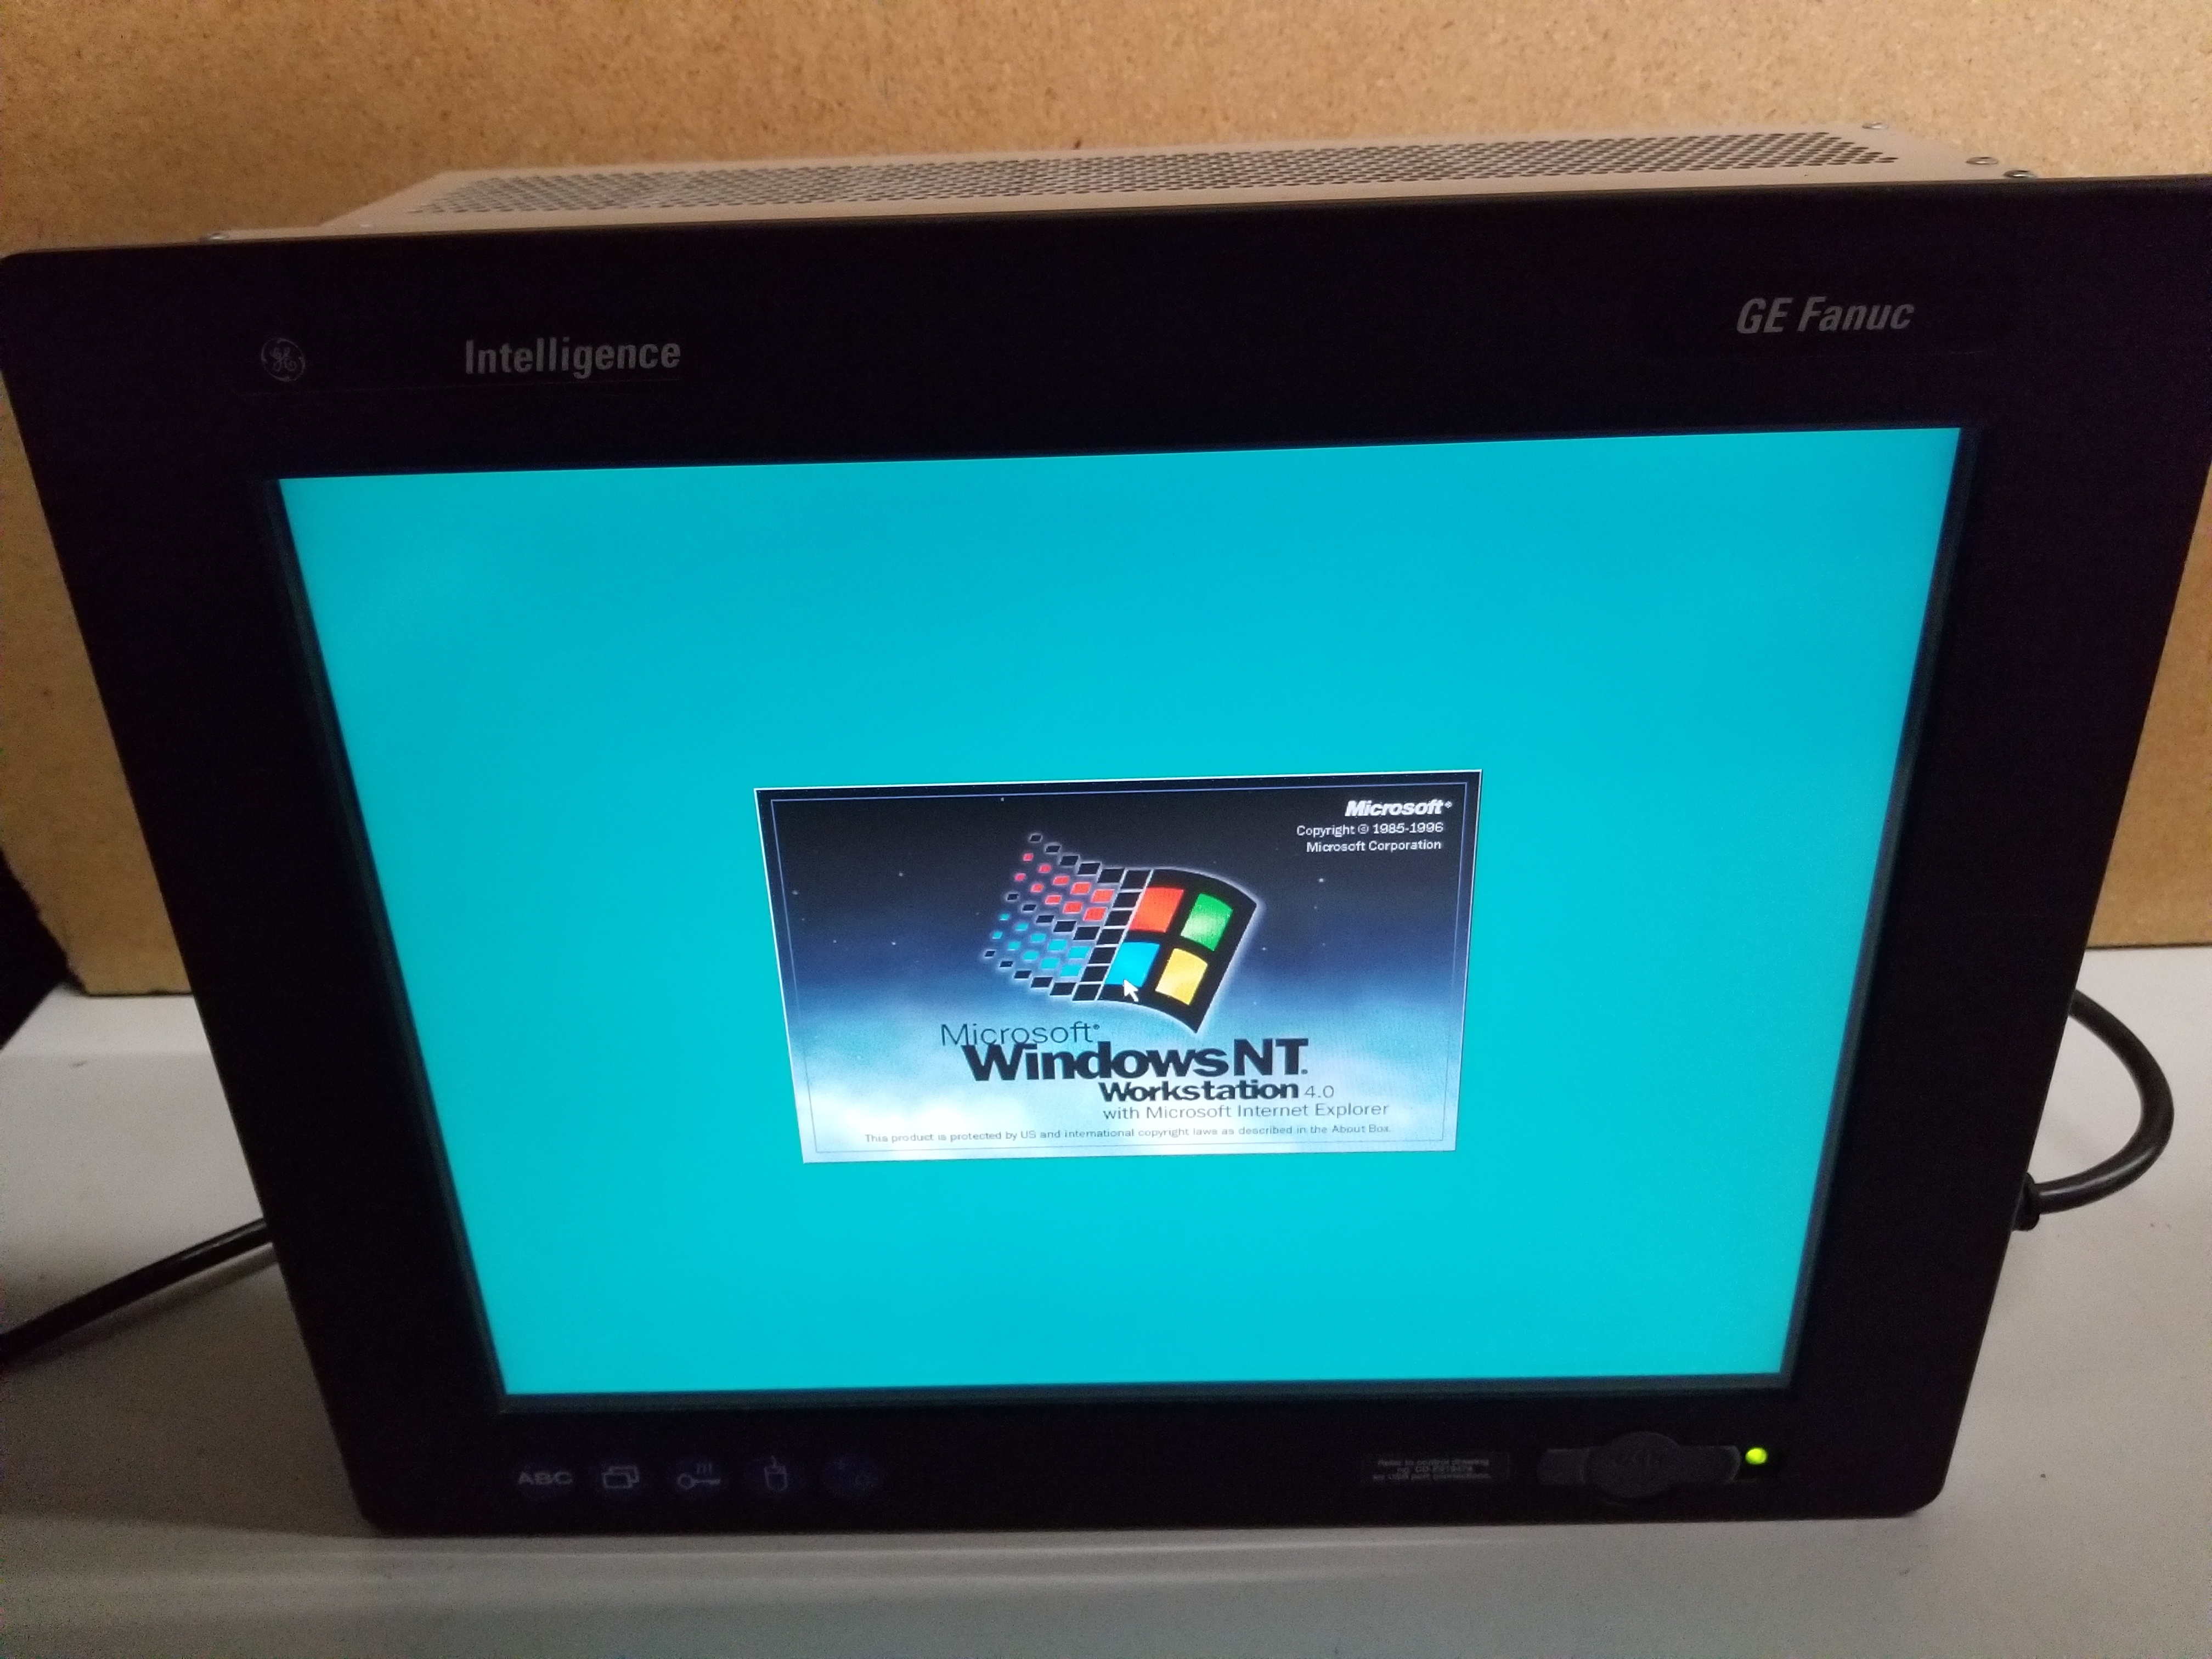 Lot 1 - GE FANUC INTELLIGENCE OPERATOR INTEFRACE PANEL COMPUTER DISPLAY